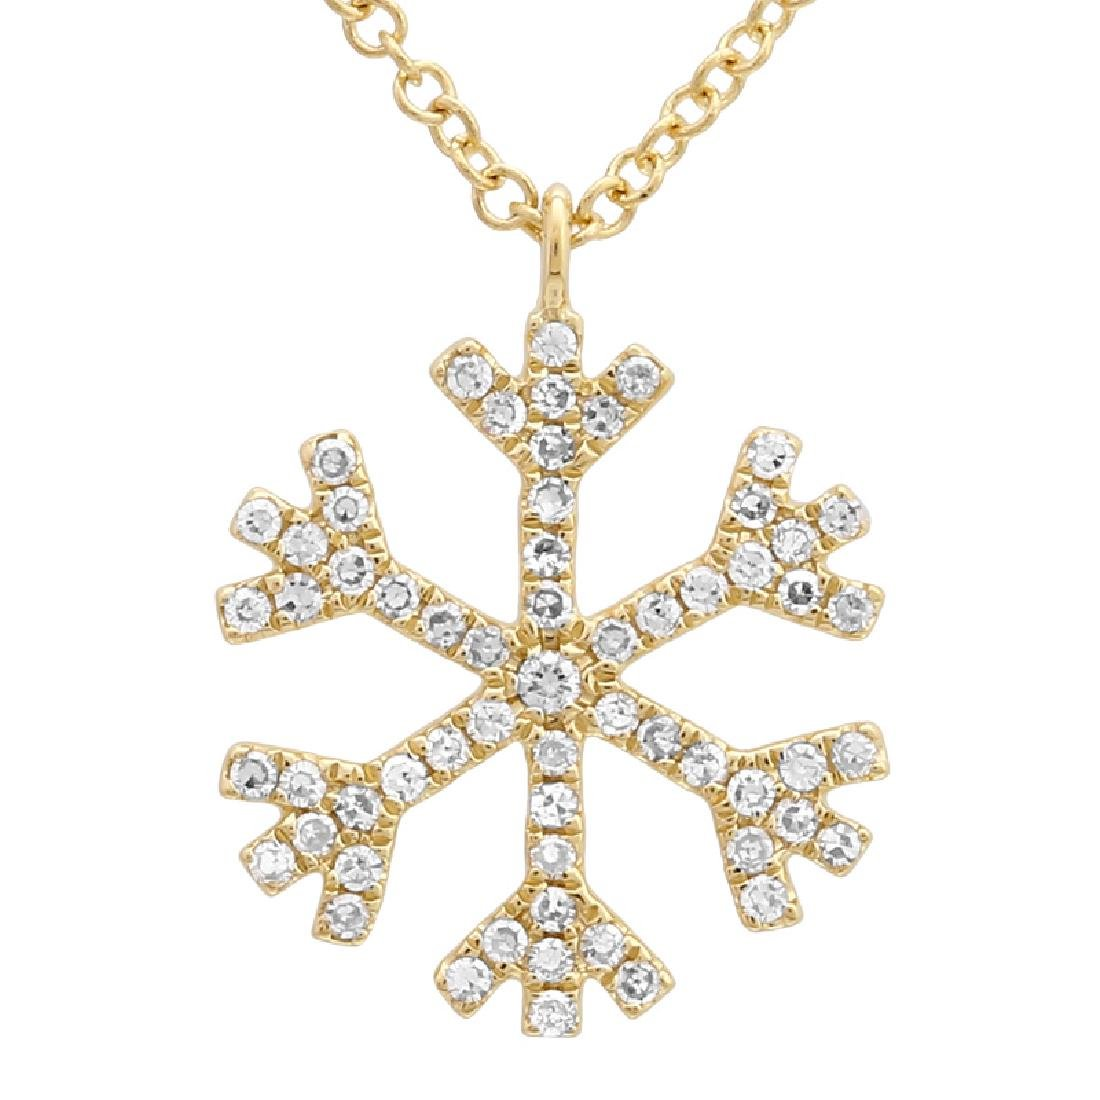 14KT Yellow Gold 0.17ctw Diamond Pendant With Chain